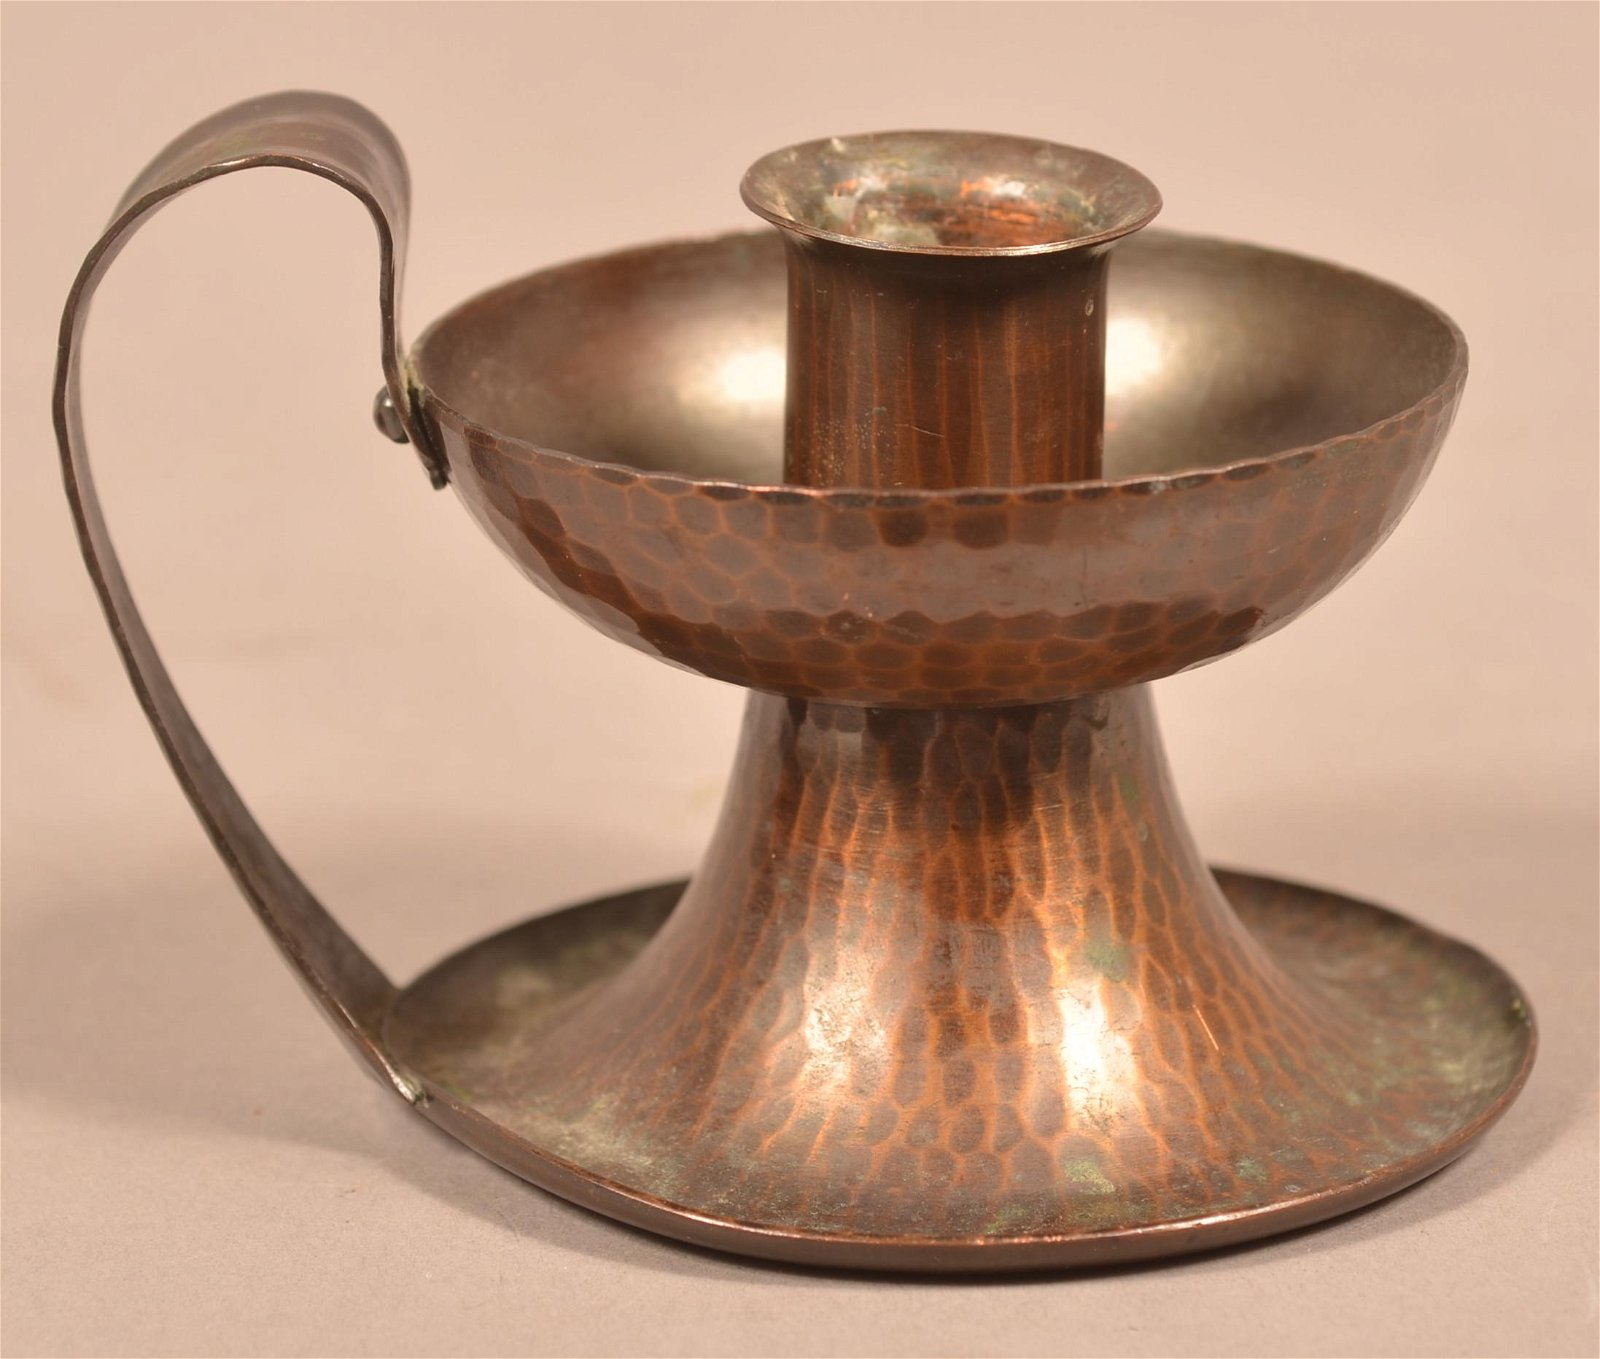 Roycroft Arts and Crafts Hammered Copper Candlestick.